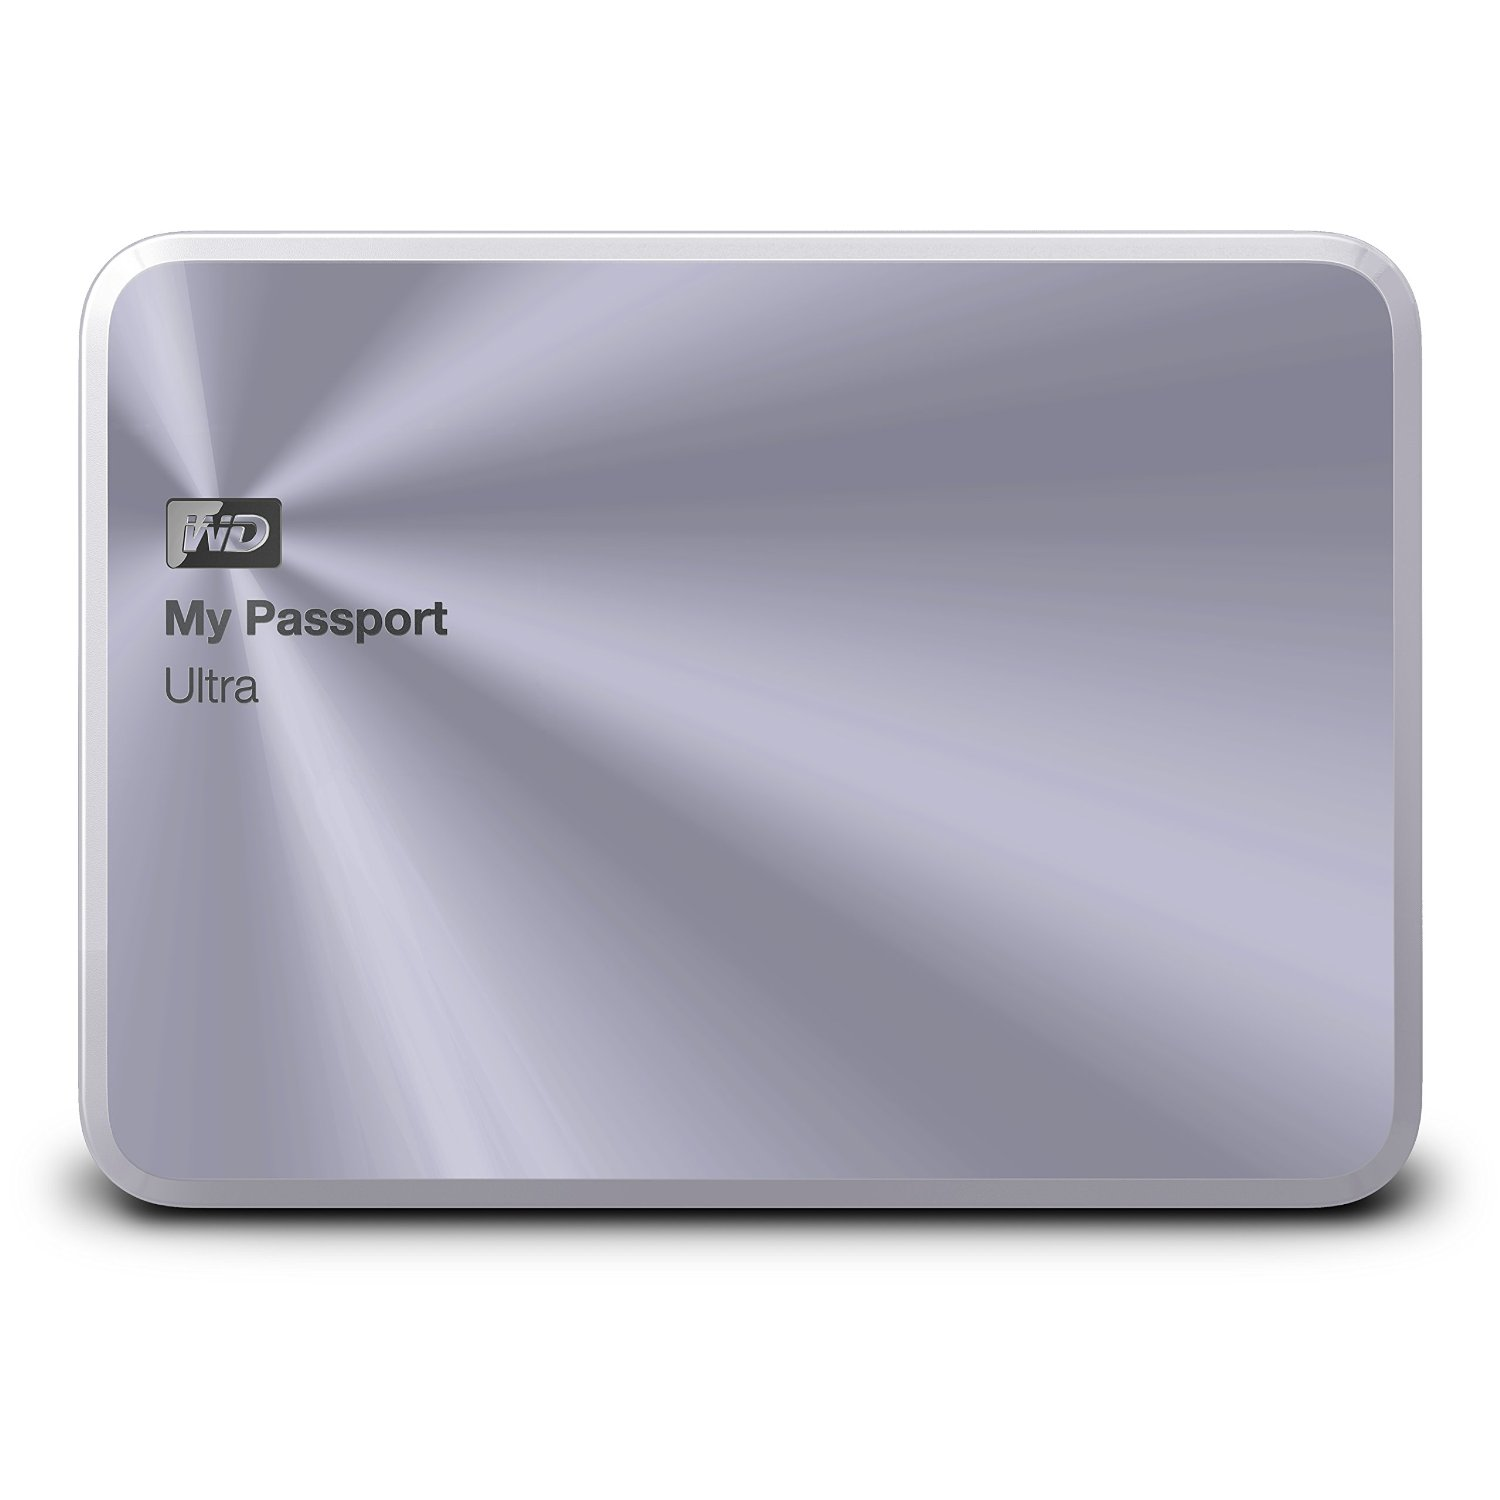 WD My Passport Ultra HDD-Metal Edition (1TB) Silver